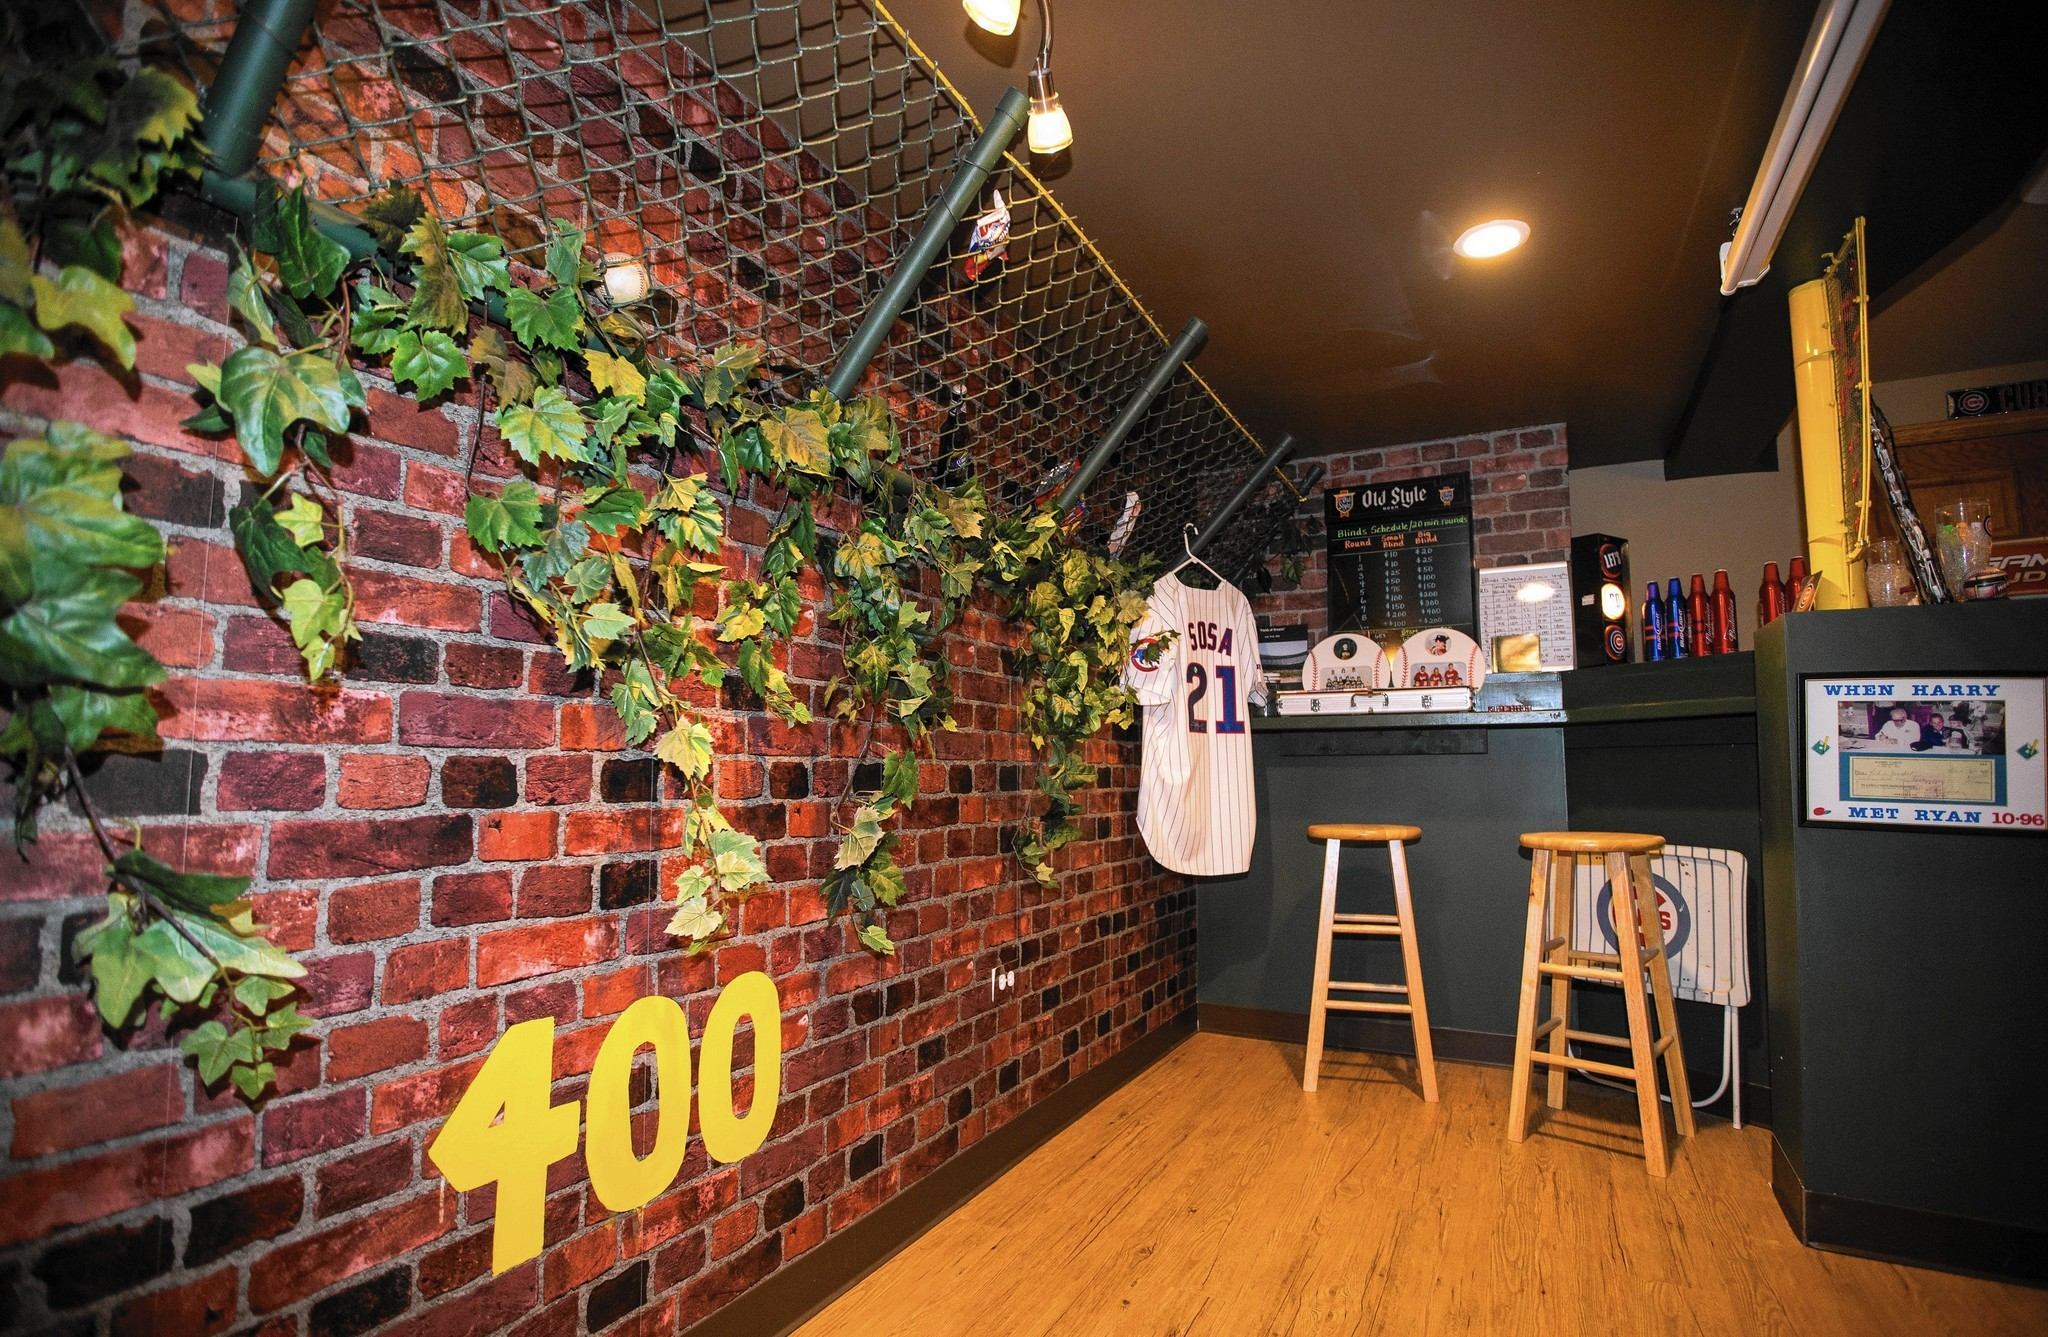 Tinley Park Cubs fans to watch playoffs from their replica